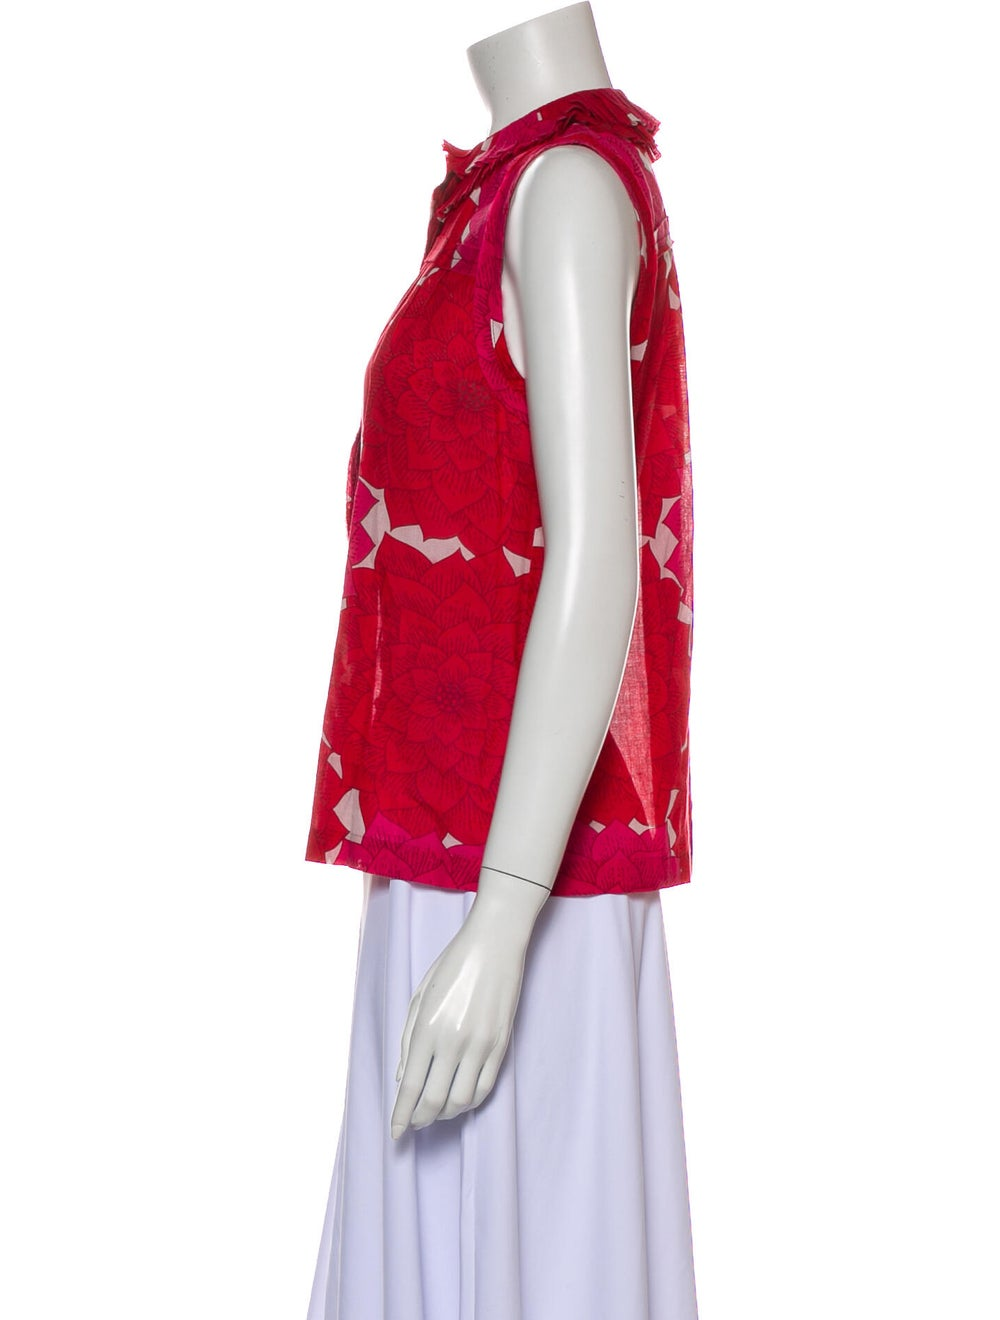 Tory Burch Floral Print Crew Neck Top Red - image 2